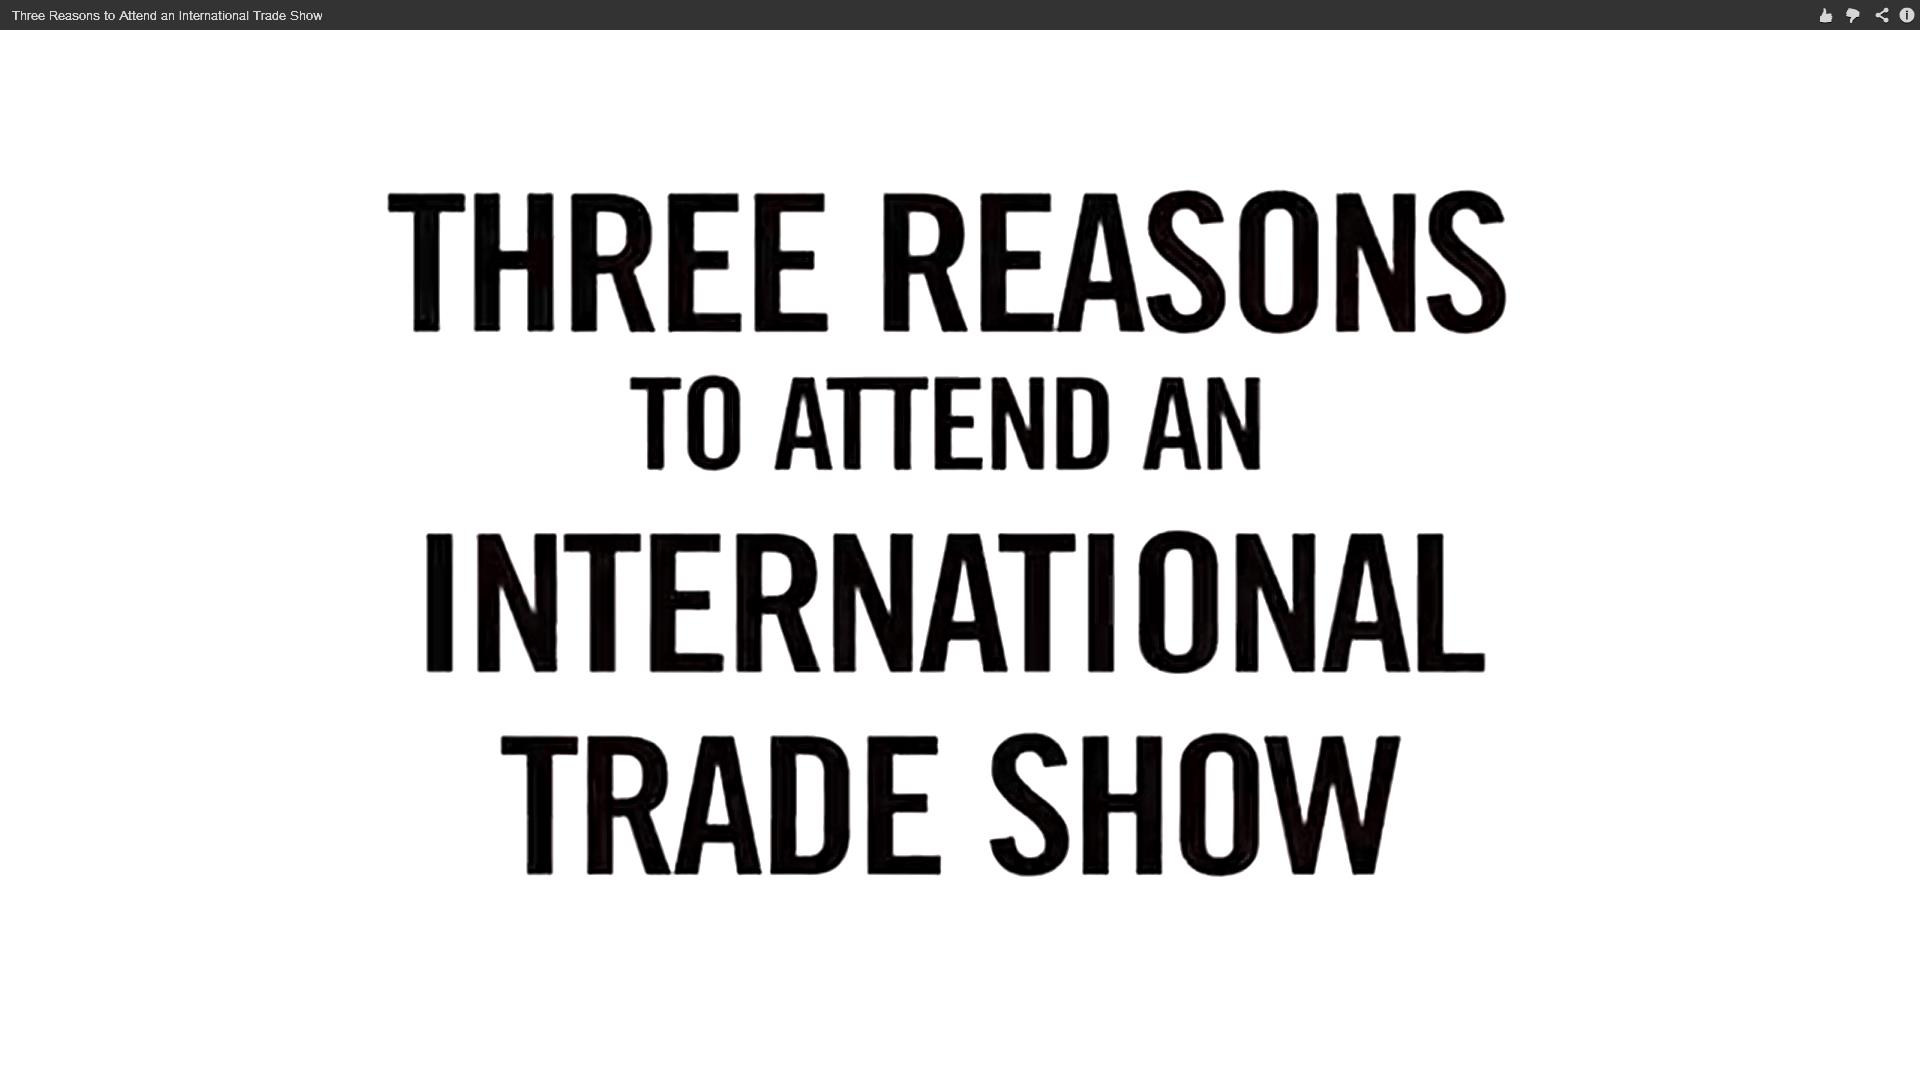 3 Reasons to Attend an International Trade Show